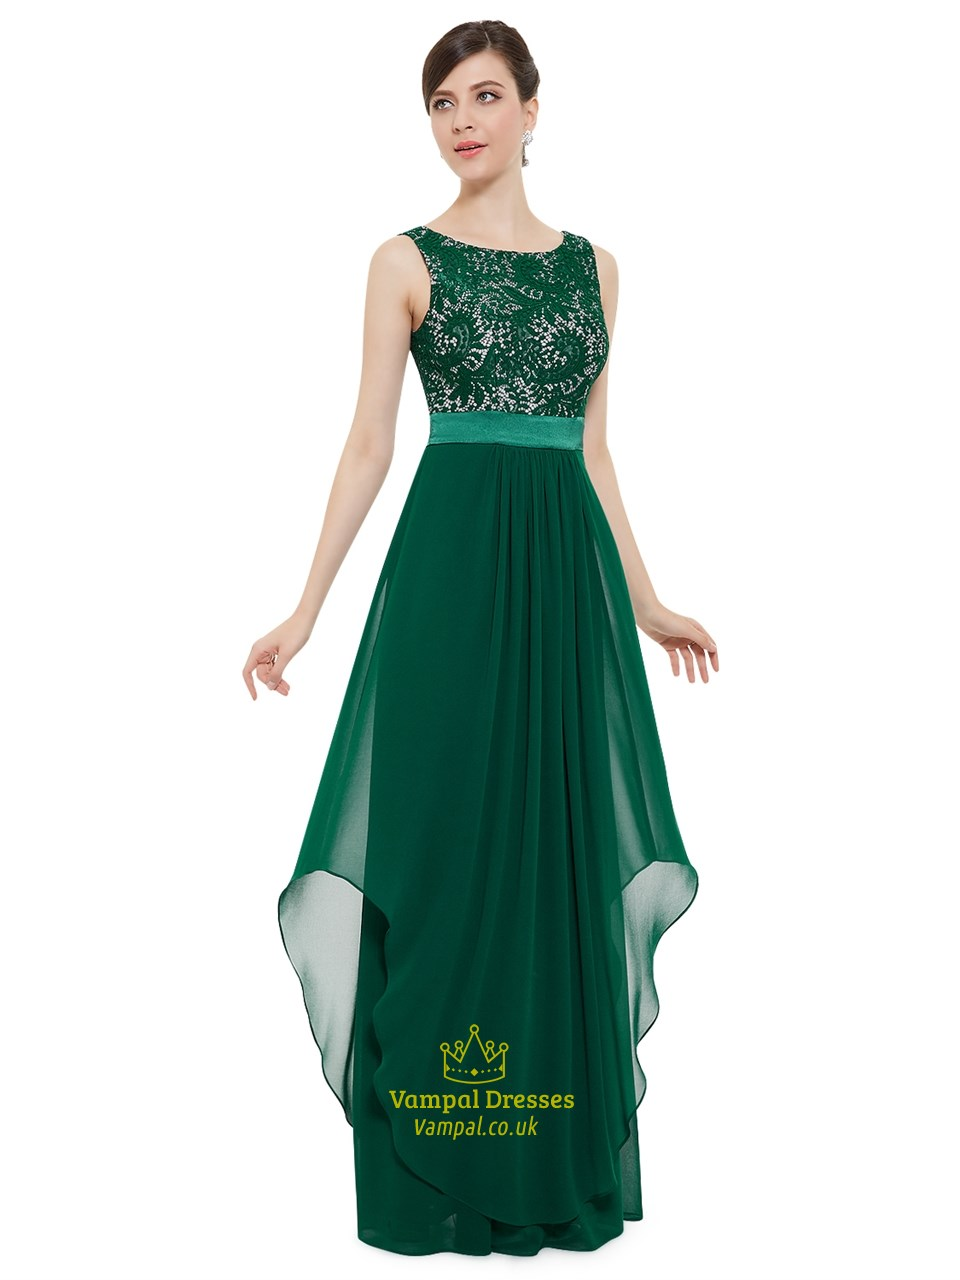 9bfb4f4671 Elegant Emerald Green Chiffon Bridesmaid Dresses With Lace Bodice Sku Nw1470